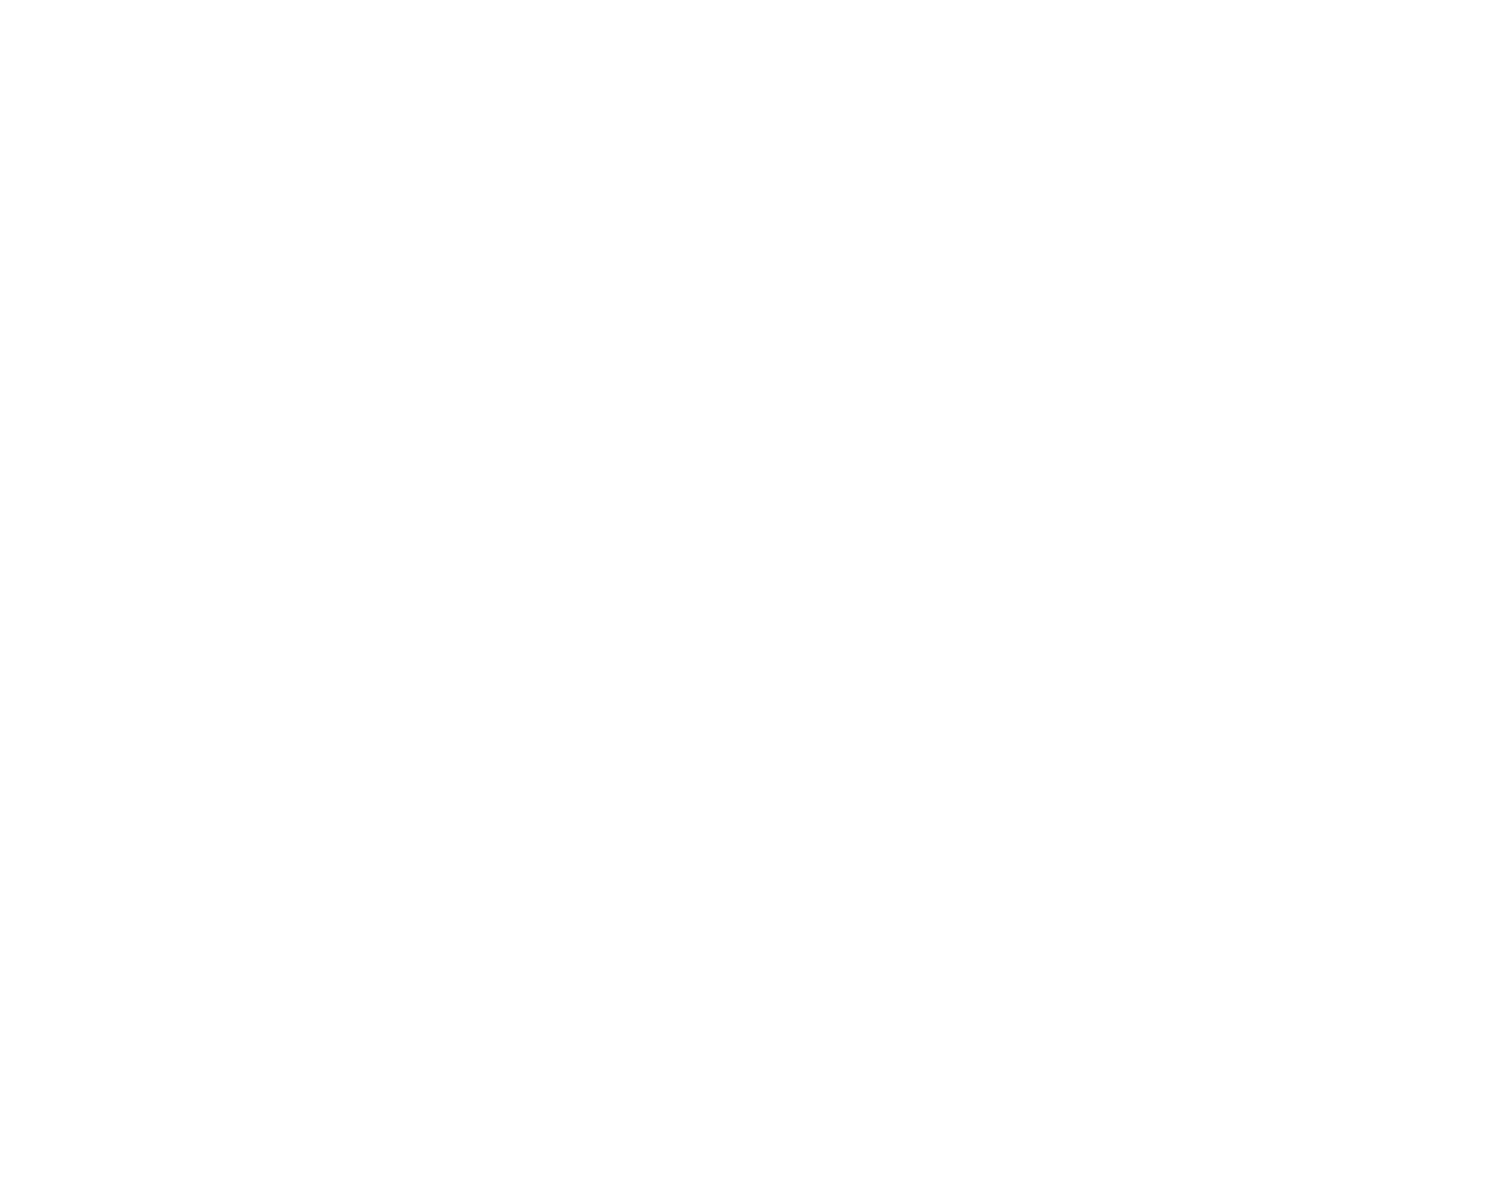 Hamptons Landscape Lighting - LED Outdoor Lighting